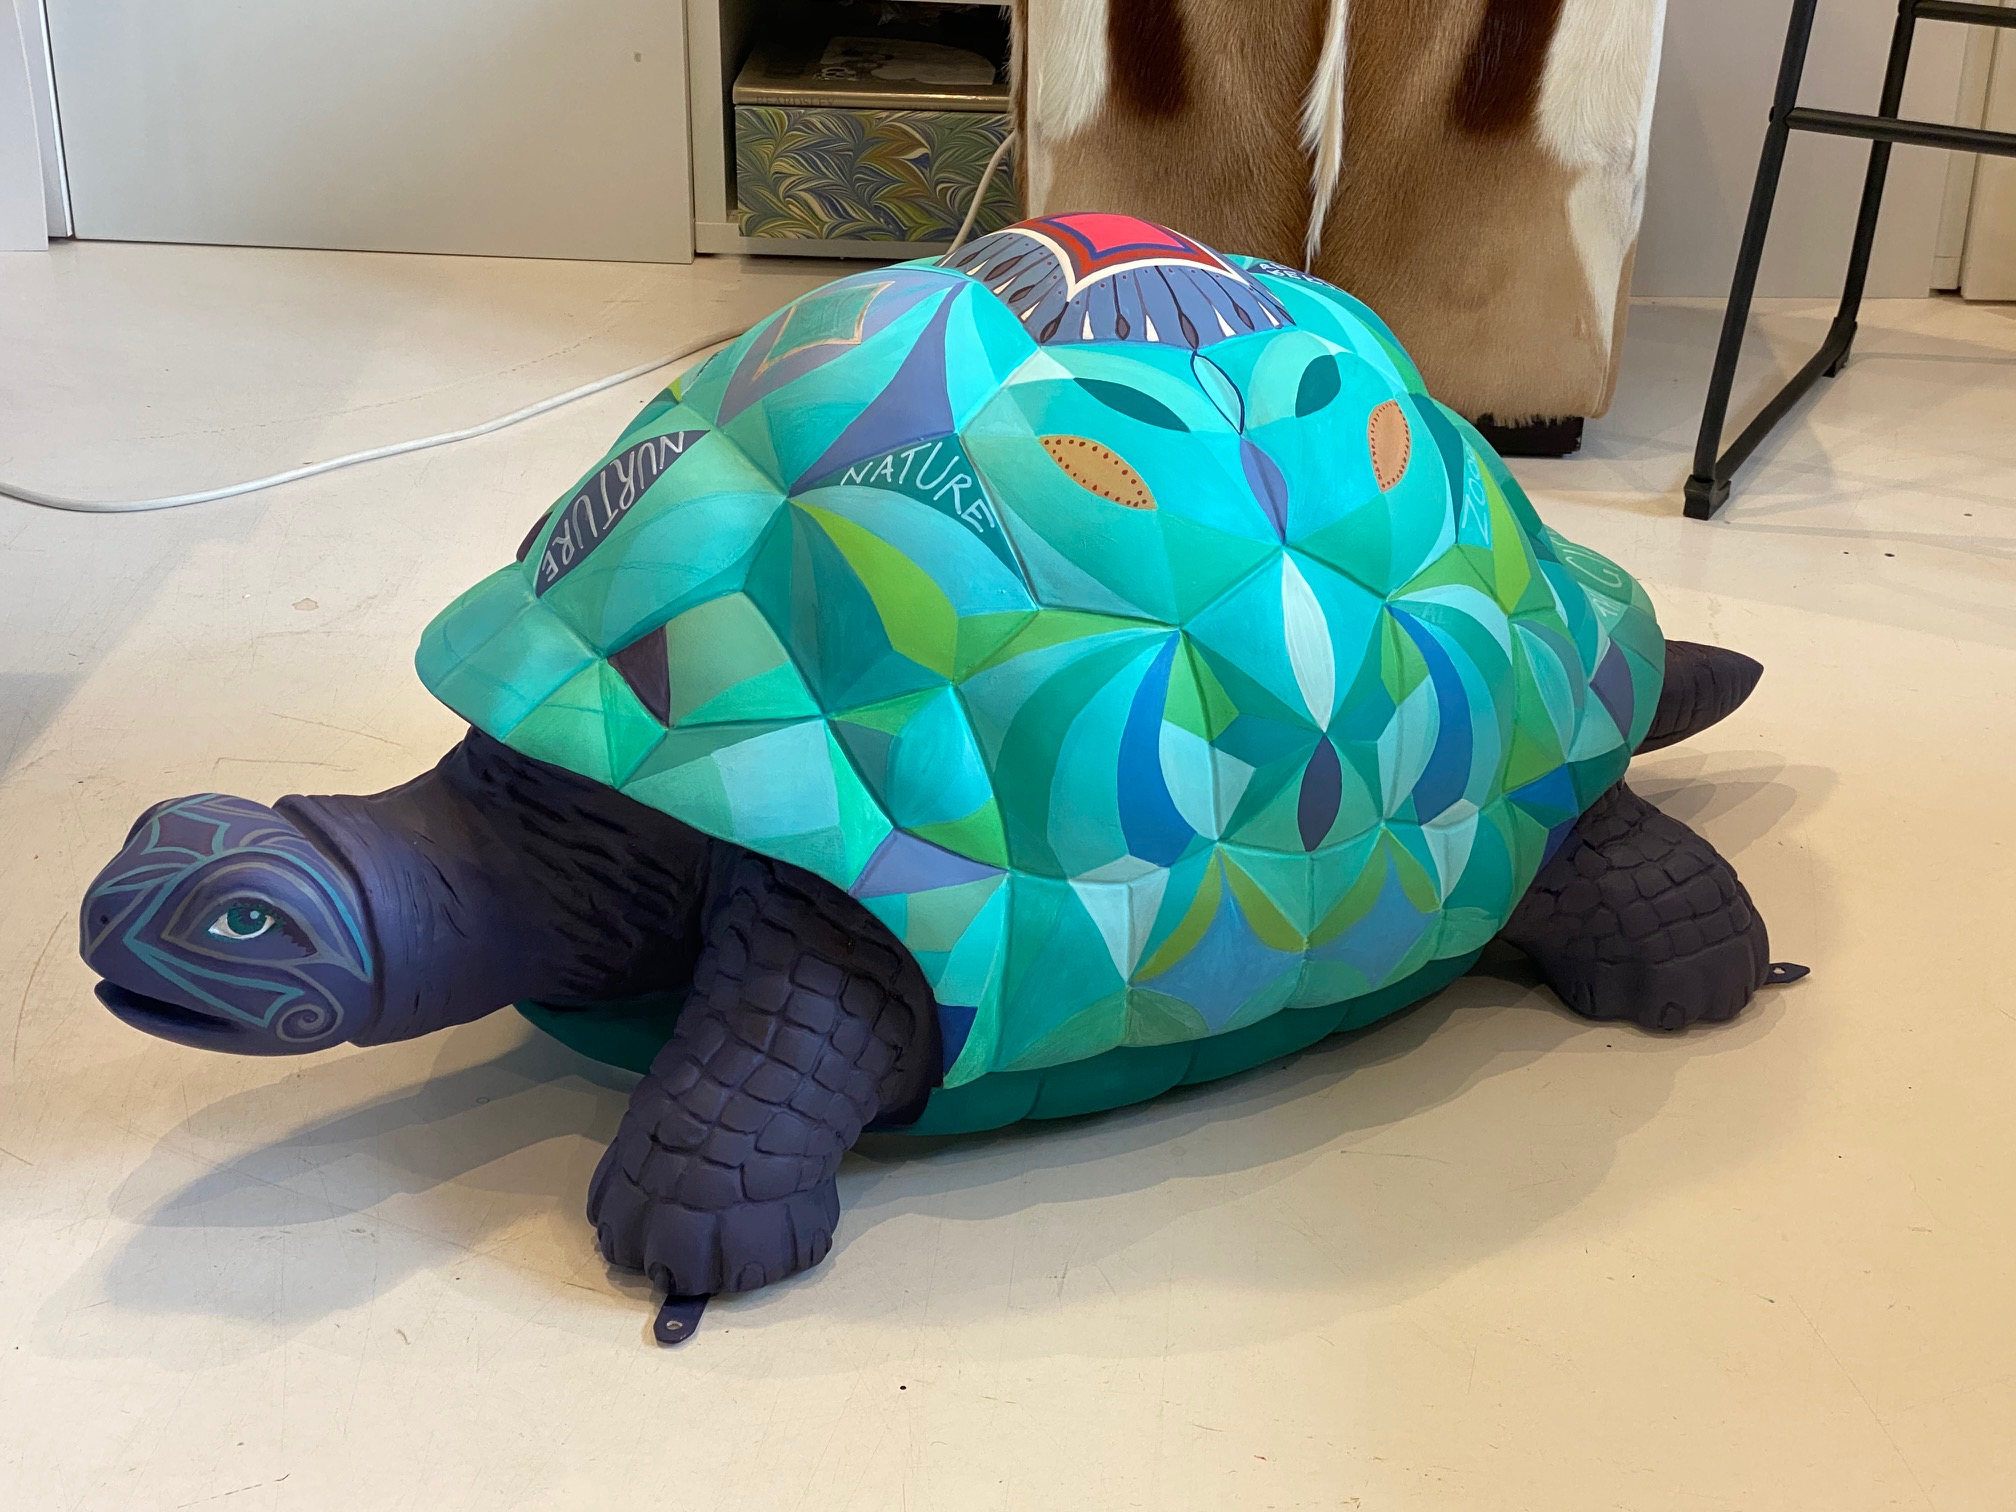 Armour d'Amour - What The Tortoise taught us - Image 3 of 7